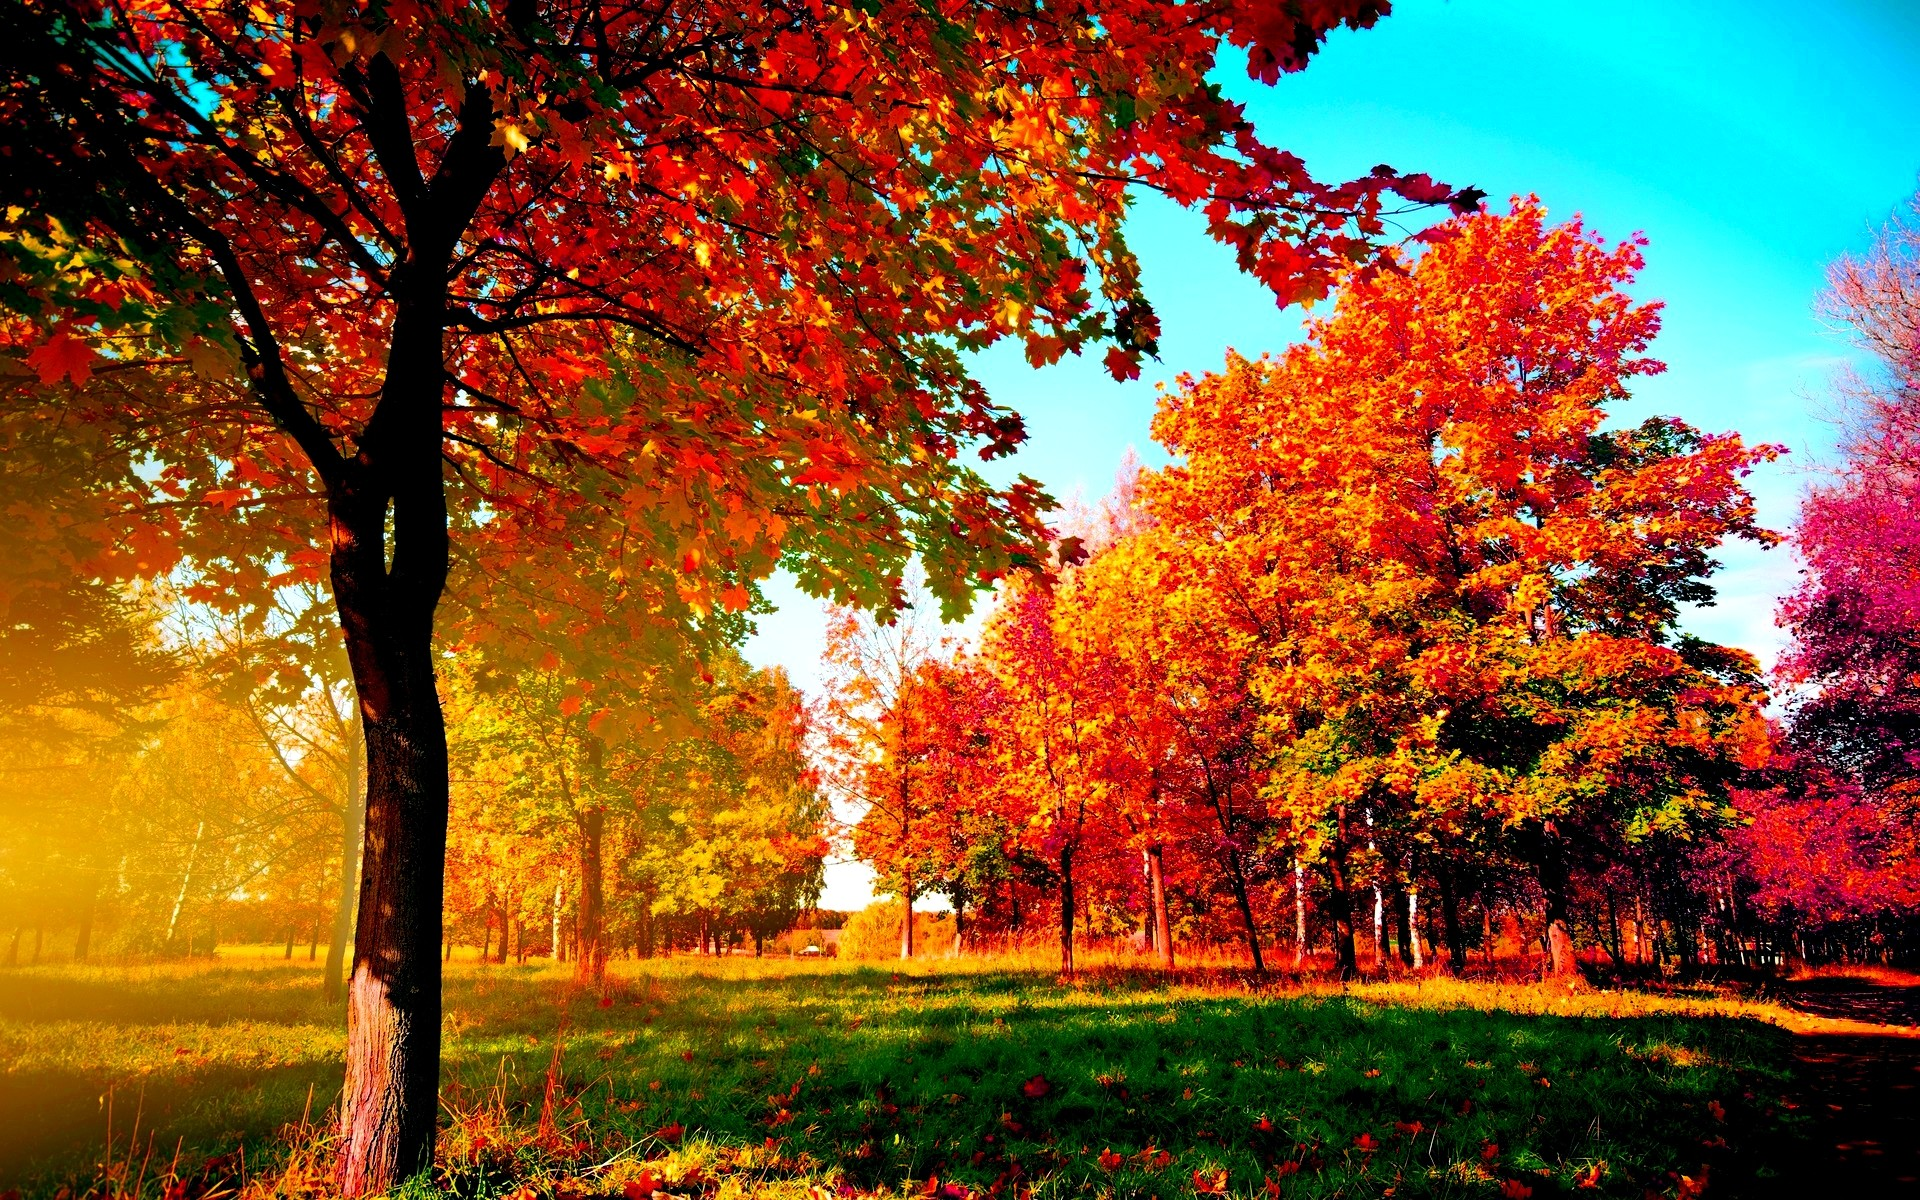 Fall Computer Wallpaper Backgrounds 64 images 1920x1200